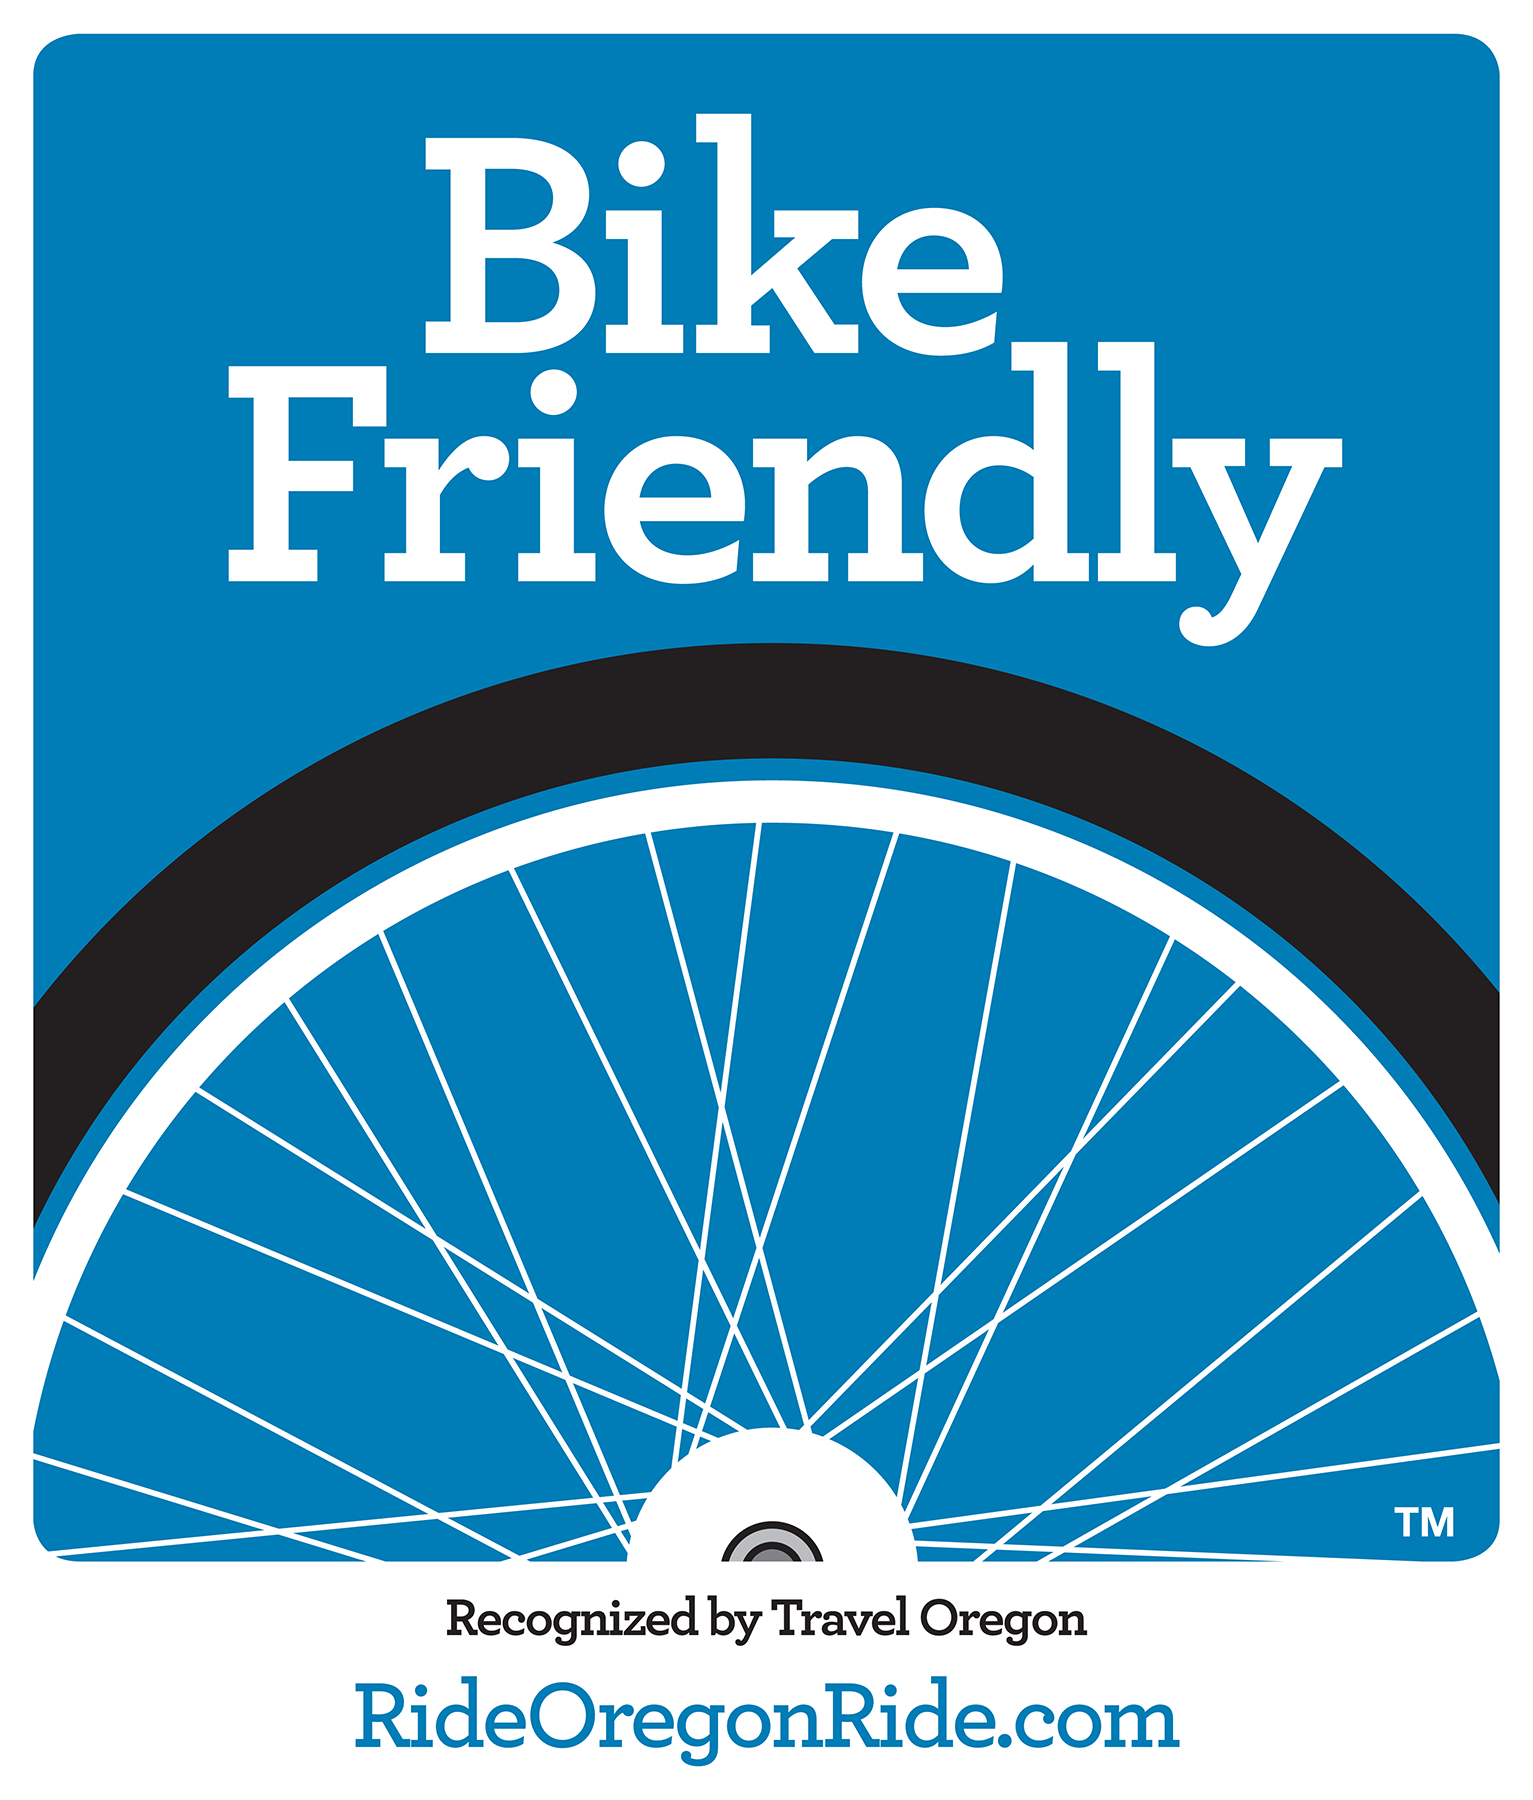 Welcome, Bicycles!